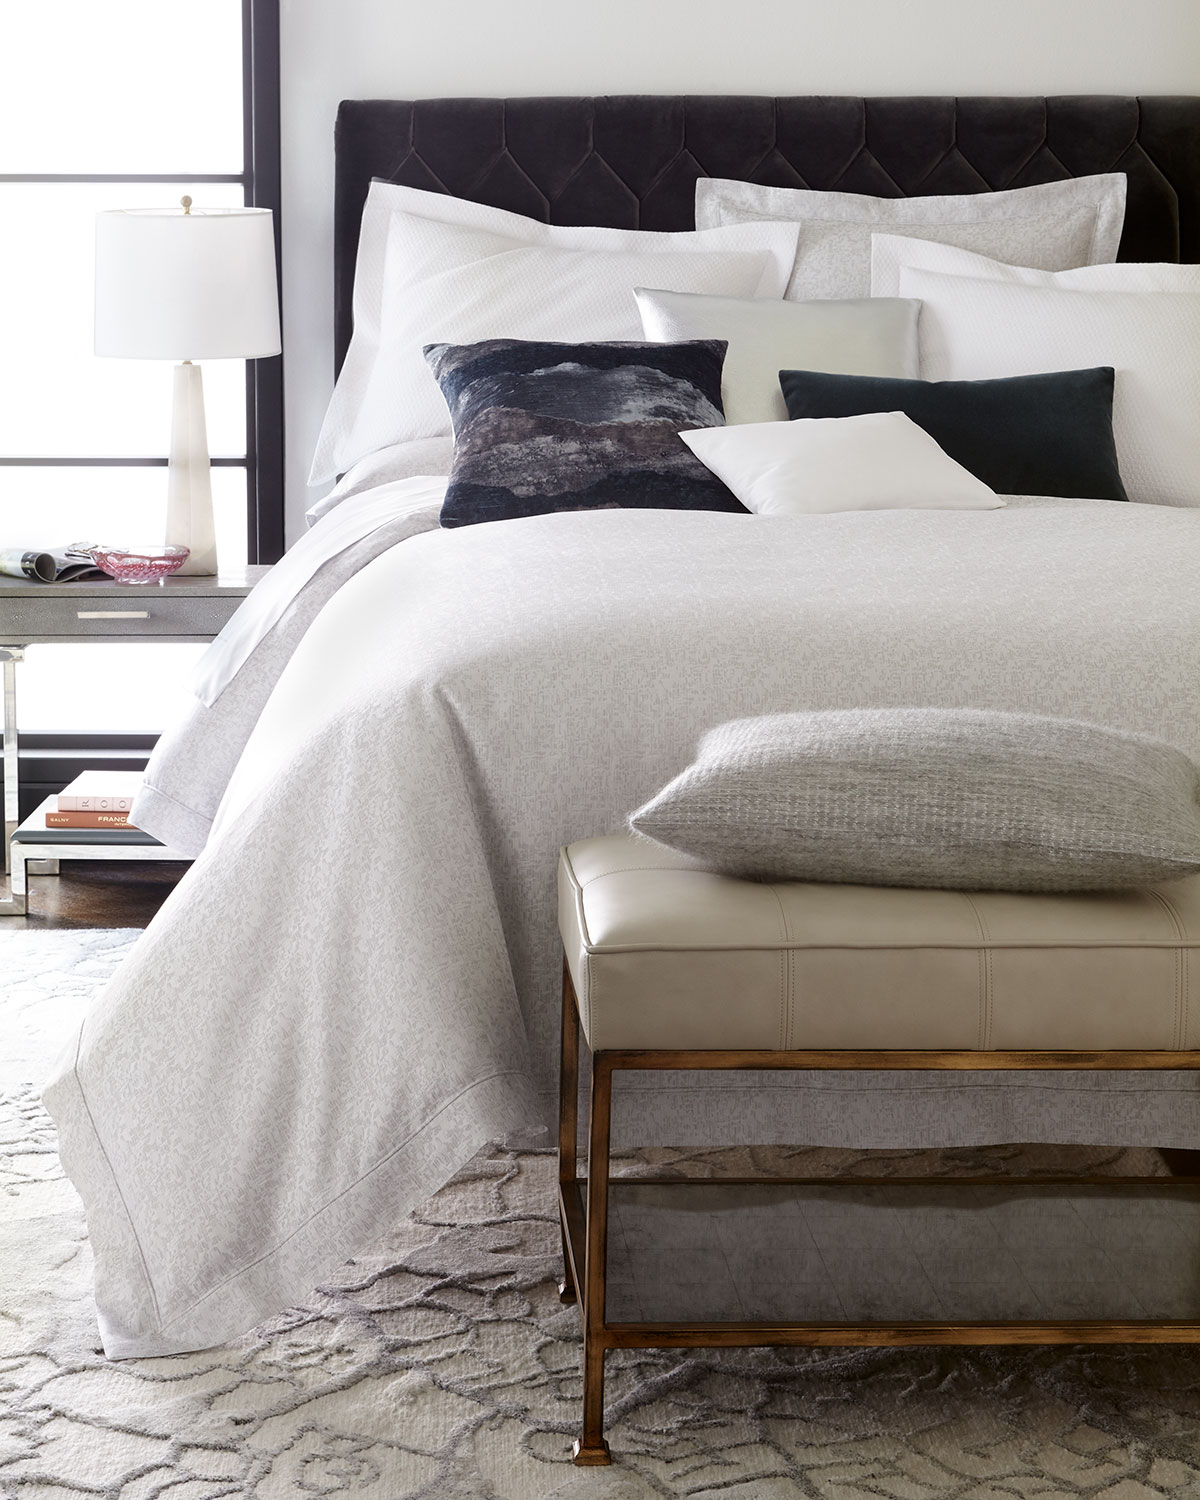 Full/Queen Layered Feathers Jacquard Duvet Cover